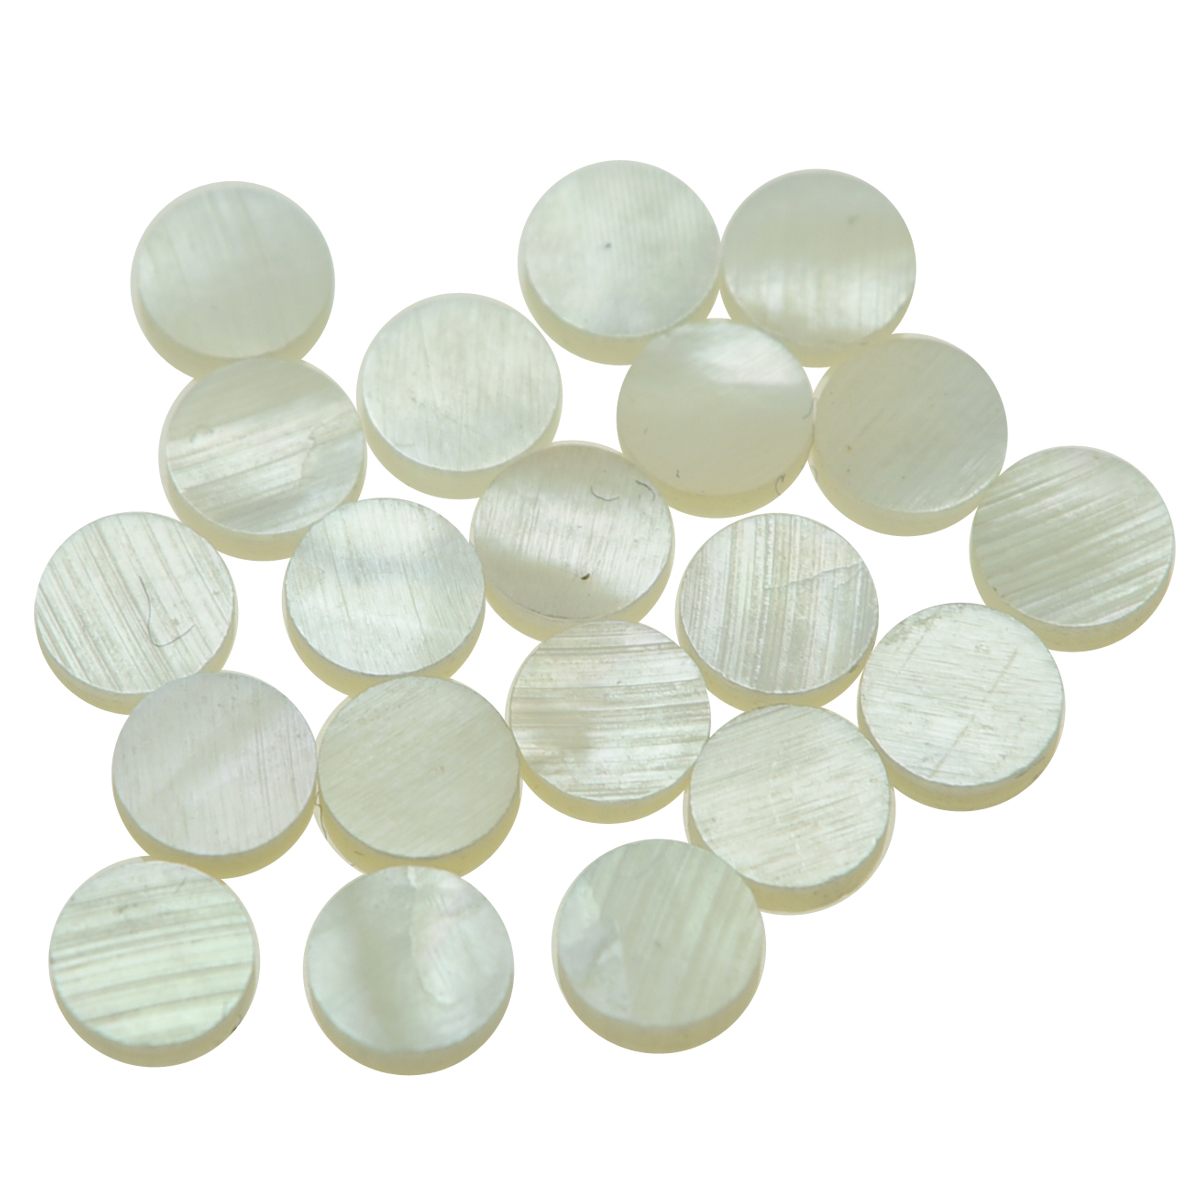 KAISH 20pcs 6mm Natural White Mother of Pearl Guitar Bass Inlay Fingerboard Fret Dots for Guitar Bass